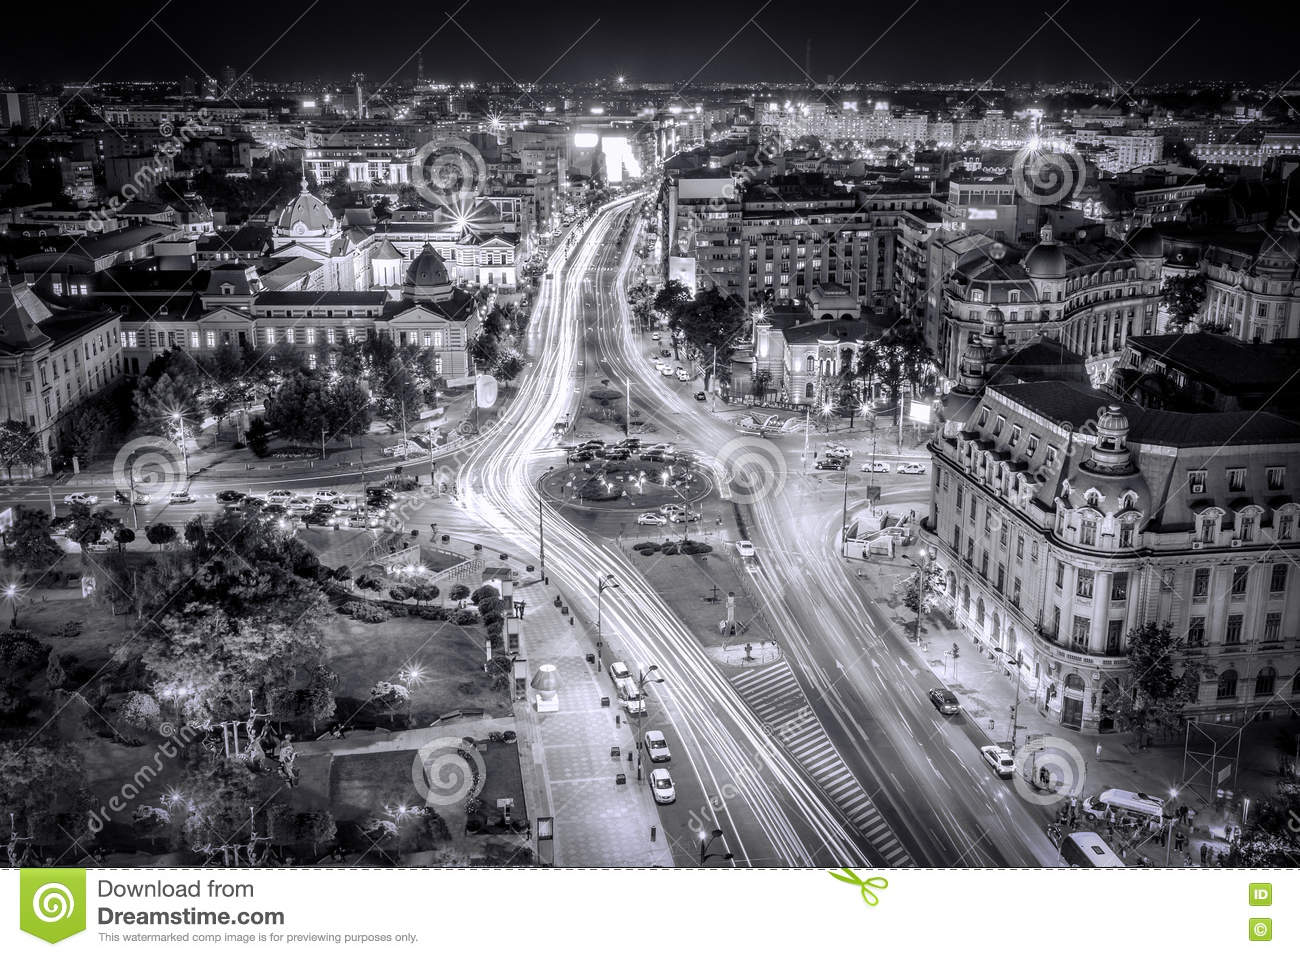 Black and white aerial photo view of the center of capital city